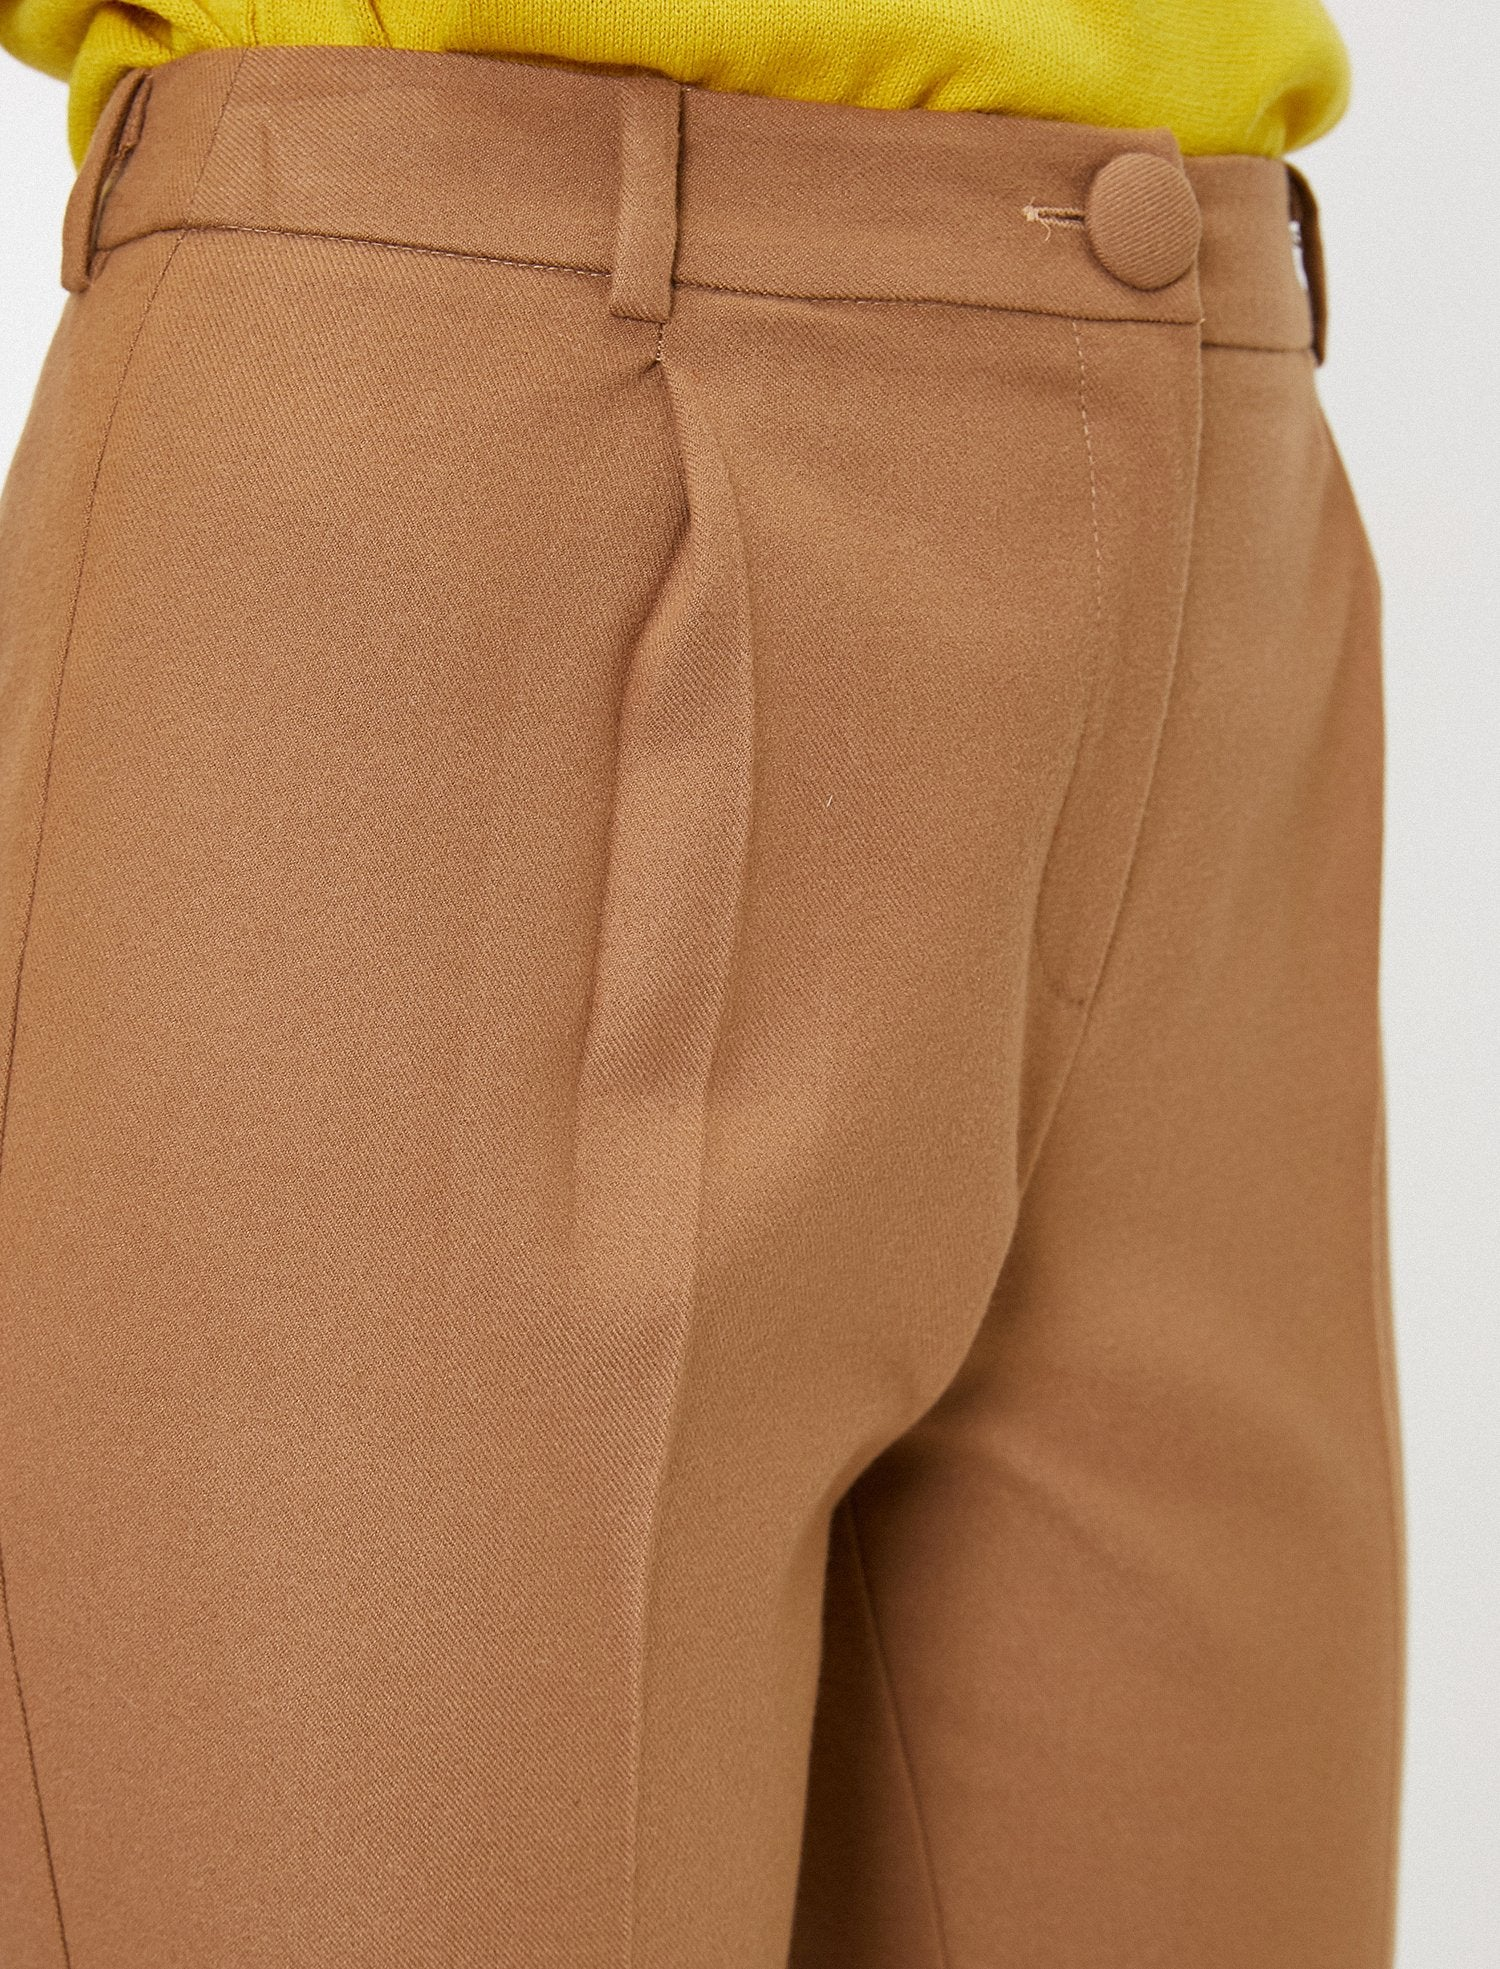 Pleated Cropped Pants in Camel